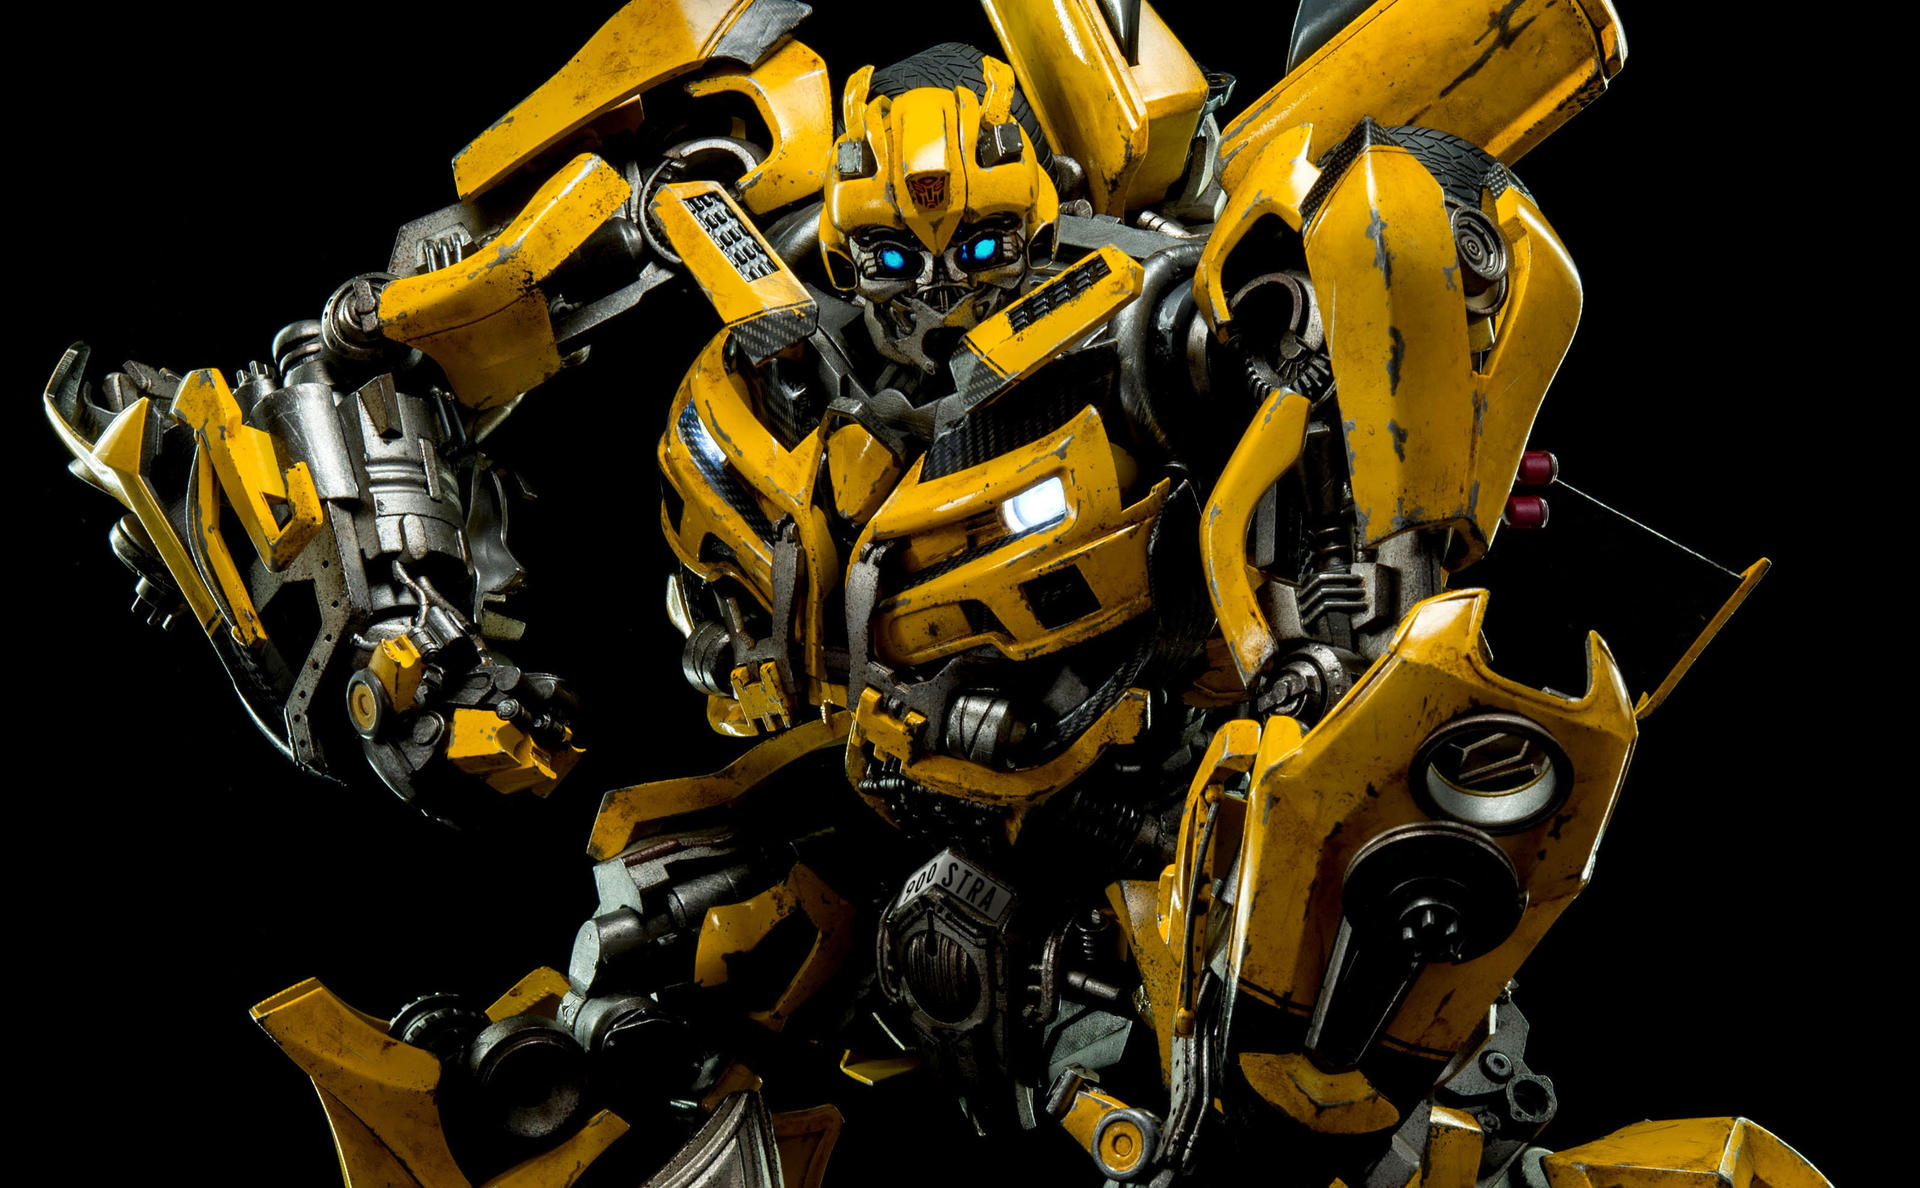 New images and info of 3a transformers dark of the moon bumblebee transformers news tfw2005 - Images of bumblebee from transformers ...